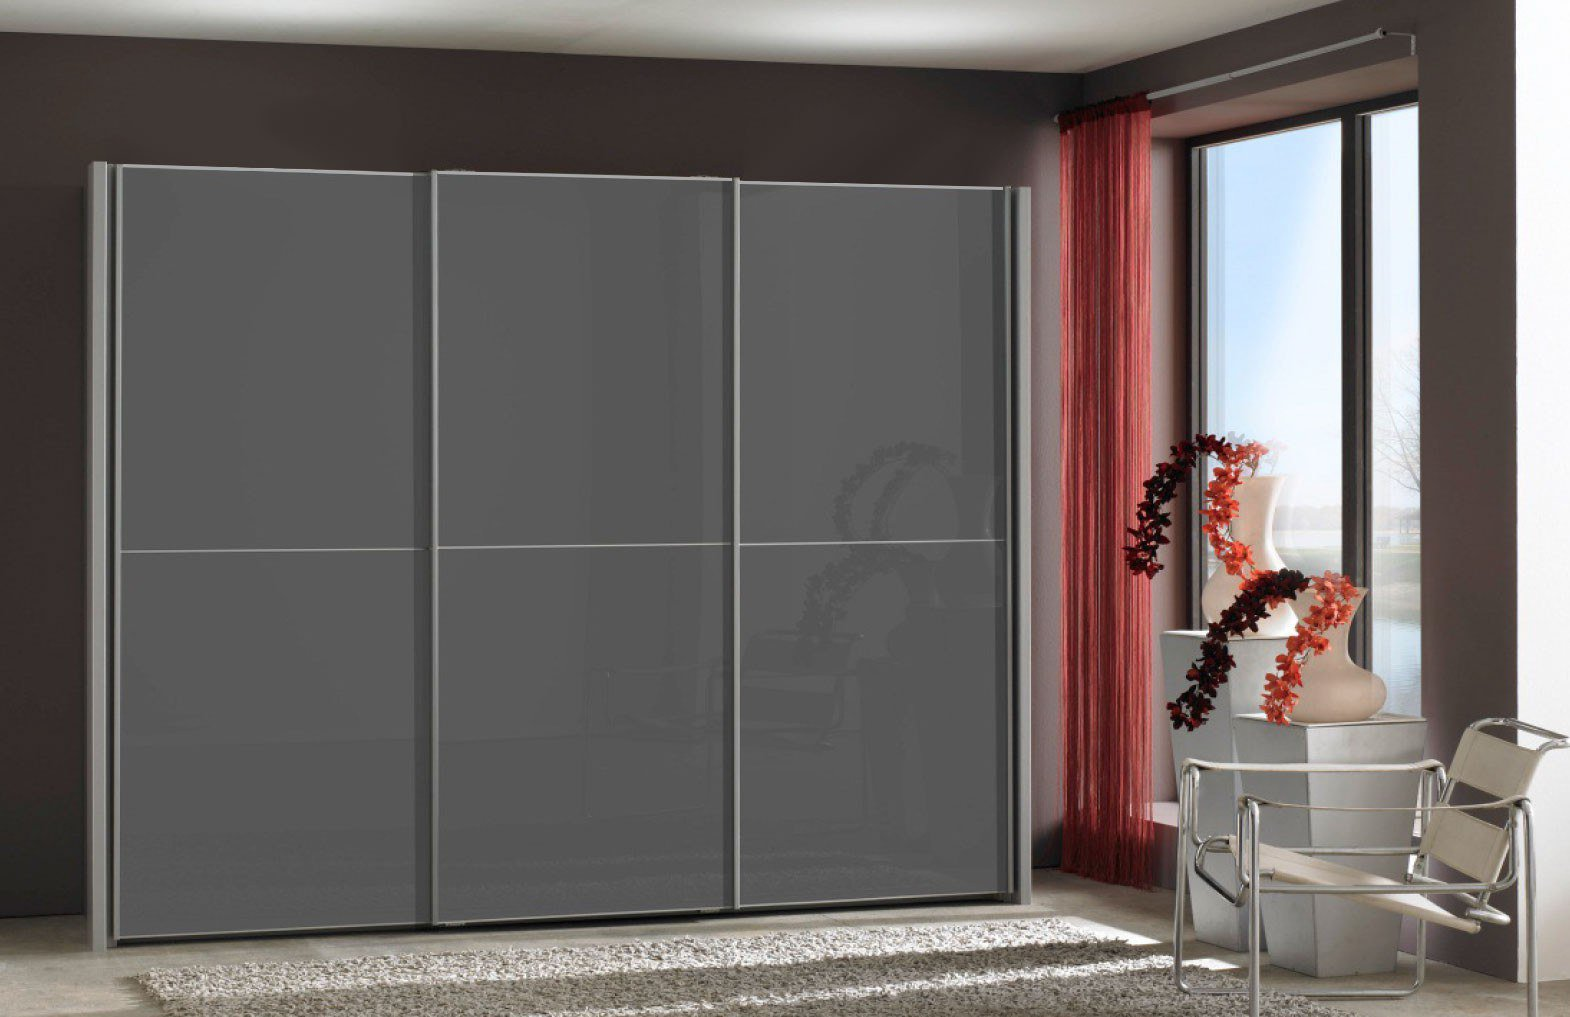 wiemann miami kleiderschrank 3 t rig grau m bel letz ihr online shop. Black Bedroom Furniture Sets. Home Design Ideas